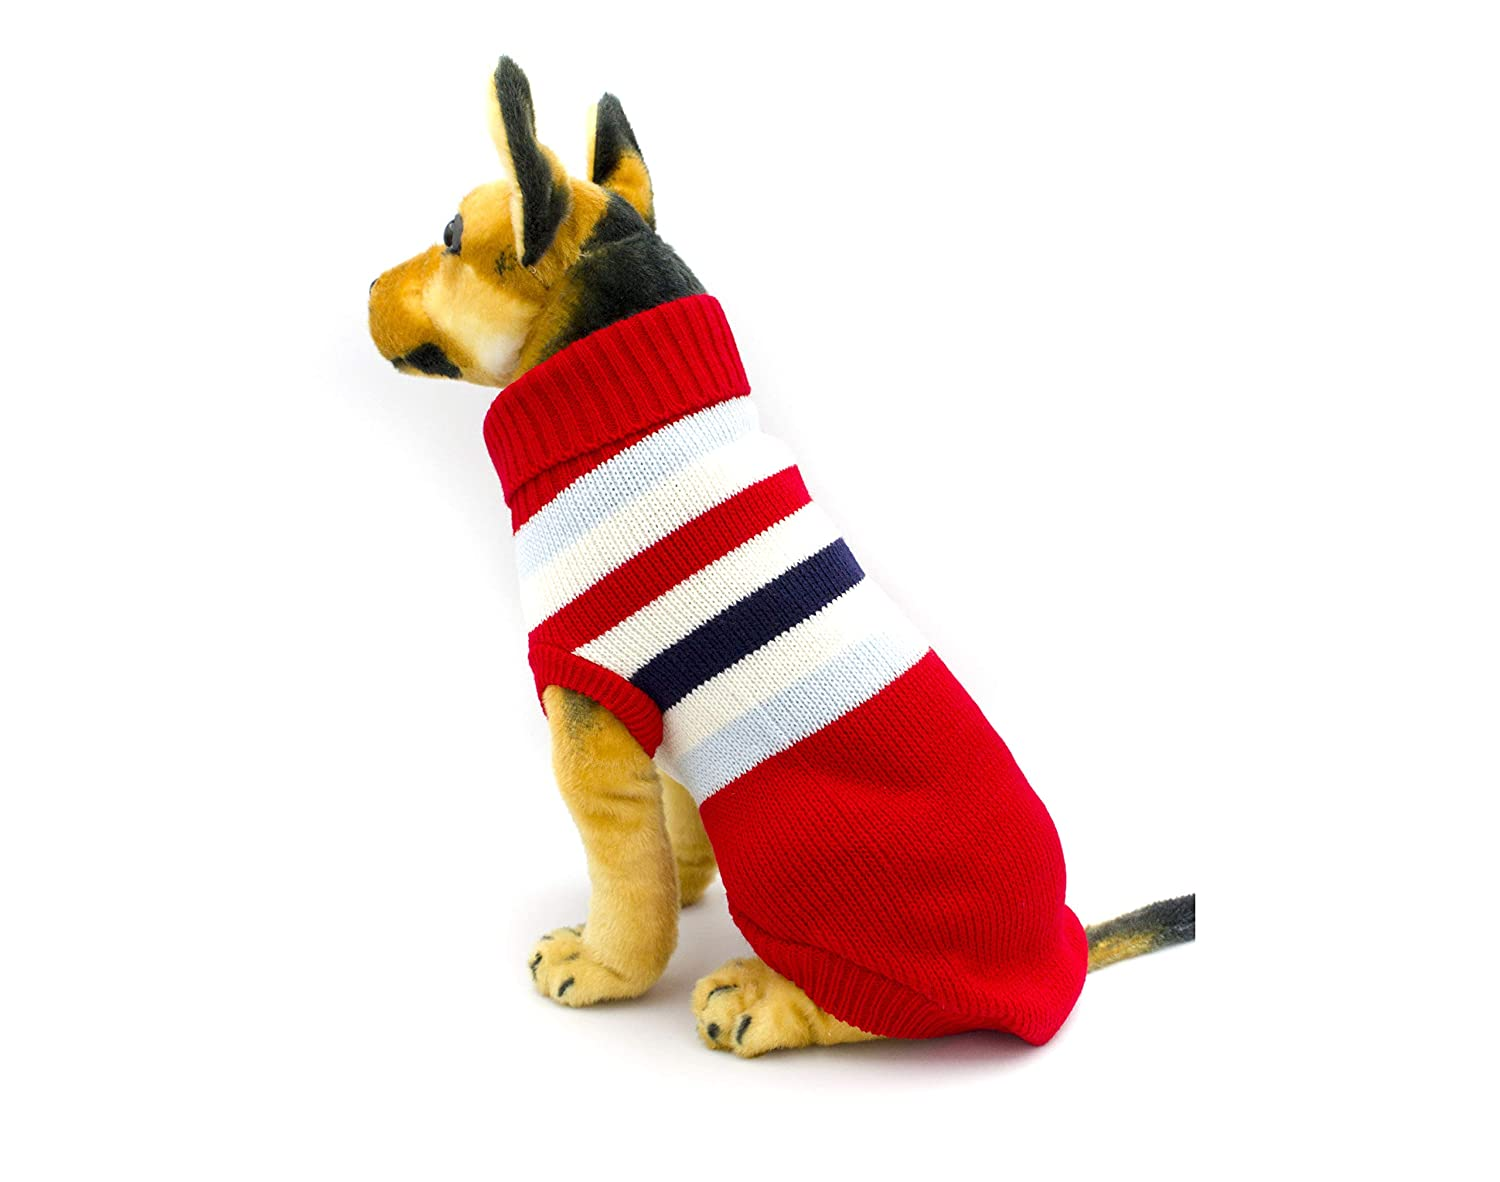 Red Small Red Small AXEL PETS Elegant Stripes Knit Turtleneck Winter Warm Sweater for Dog and Puppy (Small, Red)